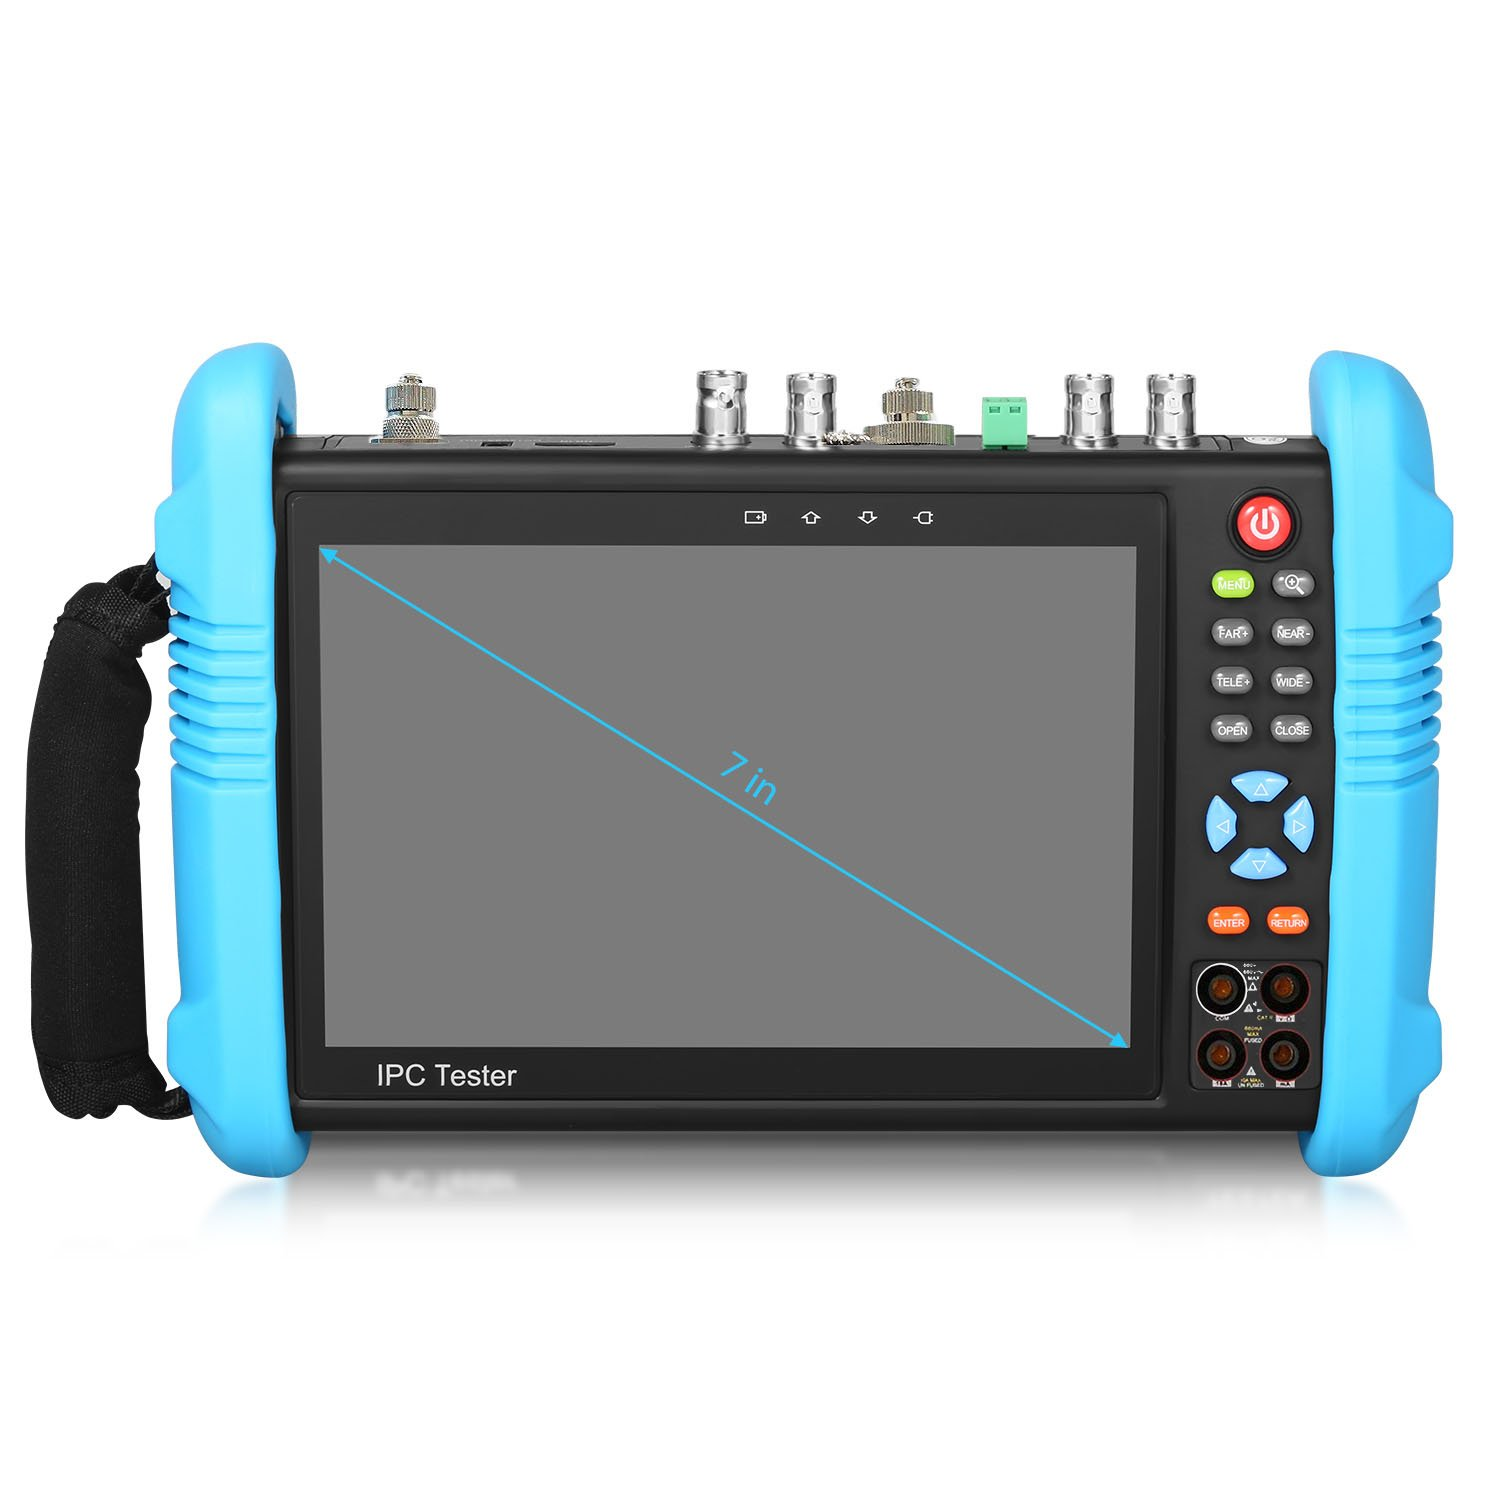 SGEF 7 inch All in One IPS Touch Screen IP Camera Tester Security CCTV Tester Monitor with SDI/TVI/AHD/CVI/POE/WIFI/4K H.265/HDMI in&Out/RJ45-TDR/OPM/VFL 9800MOTVADHS by SGEF (Image #3)